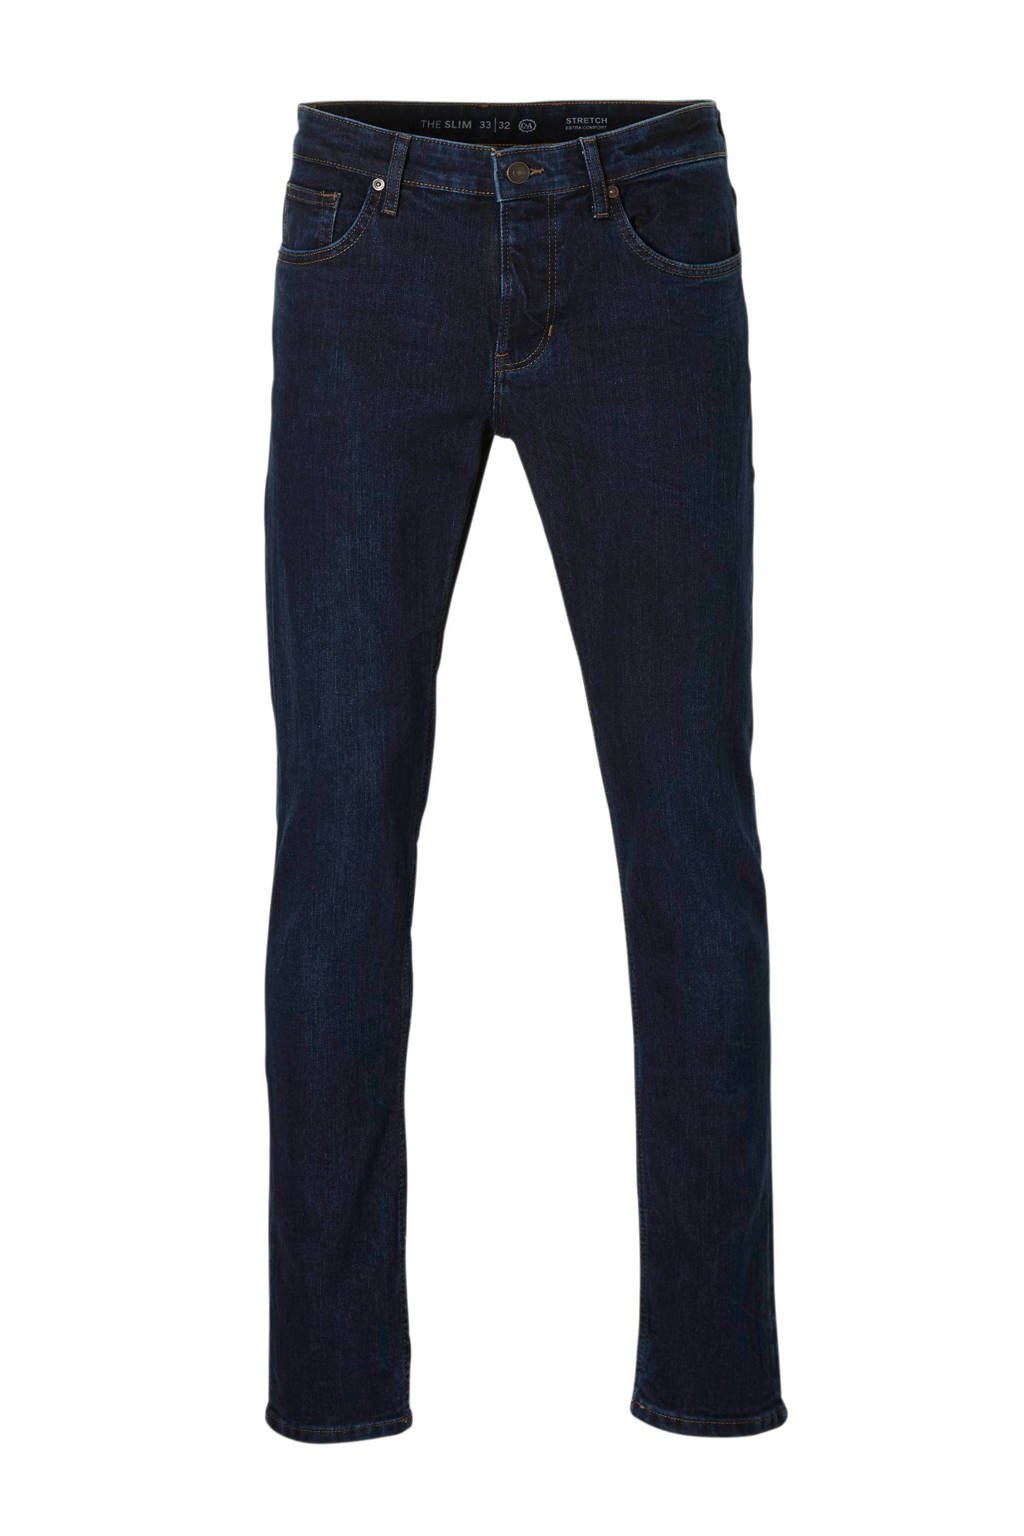 C&A The Denim slim fit jeans, Dark denim